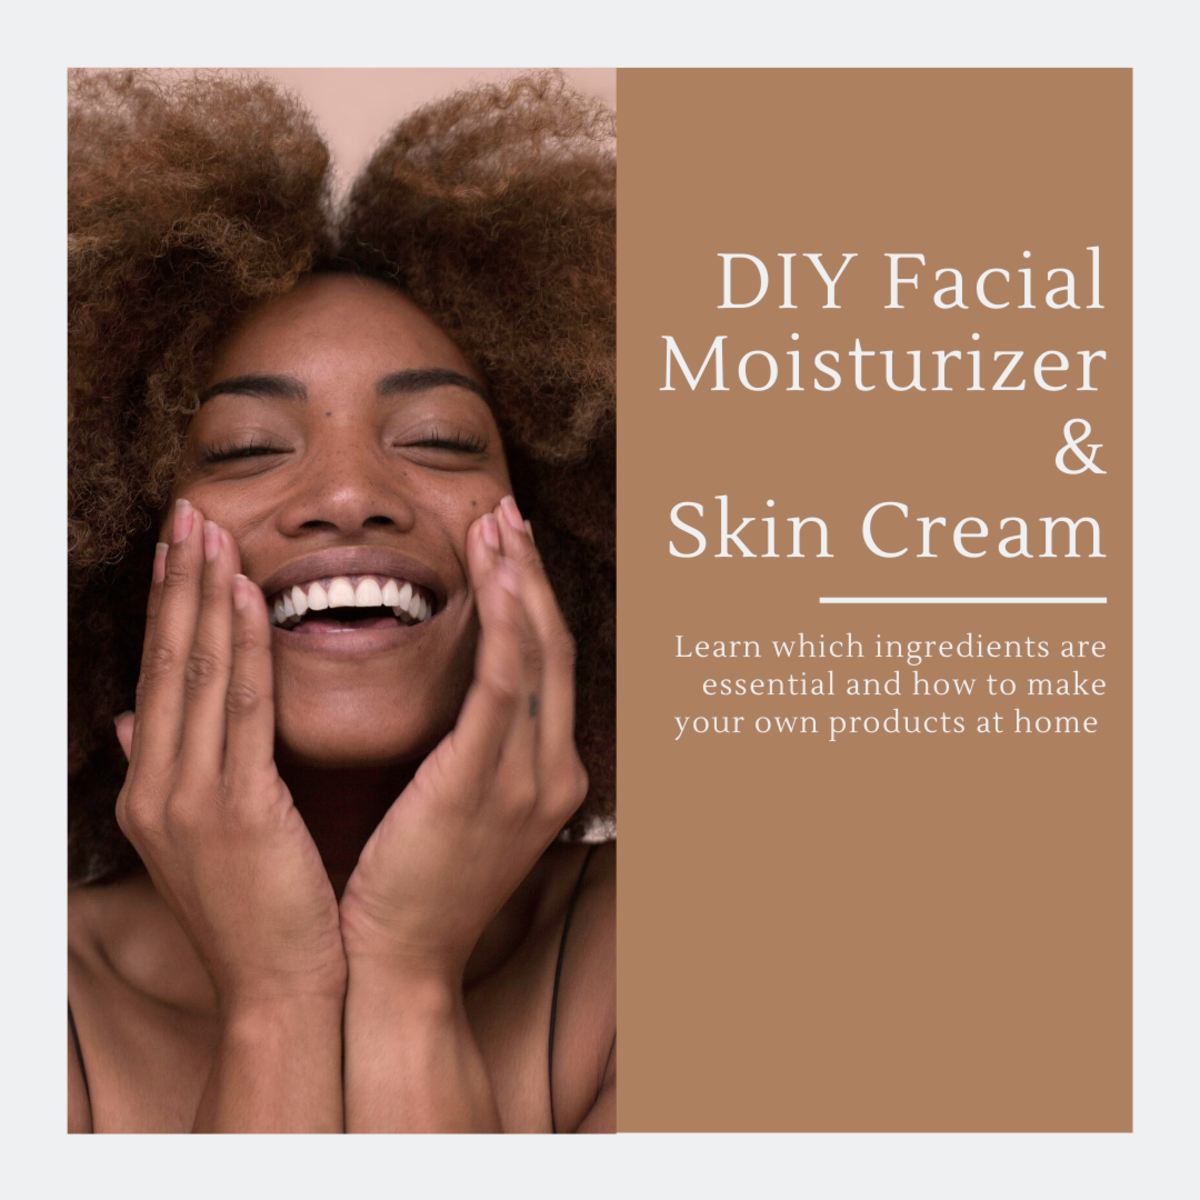 This article will break down the essential components of making your own facial moisturizer and also provides a basic recipe for creating one in your own home.